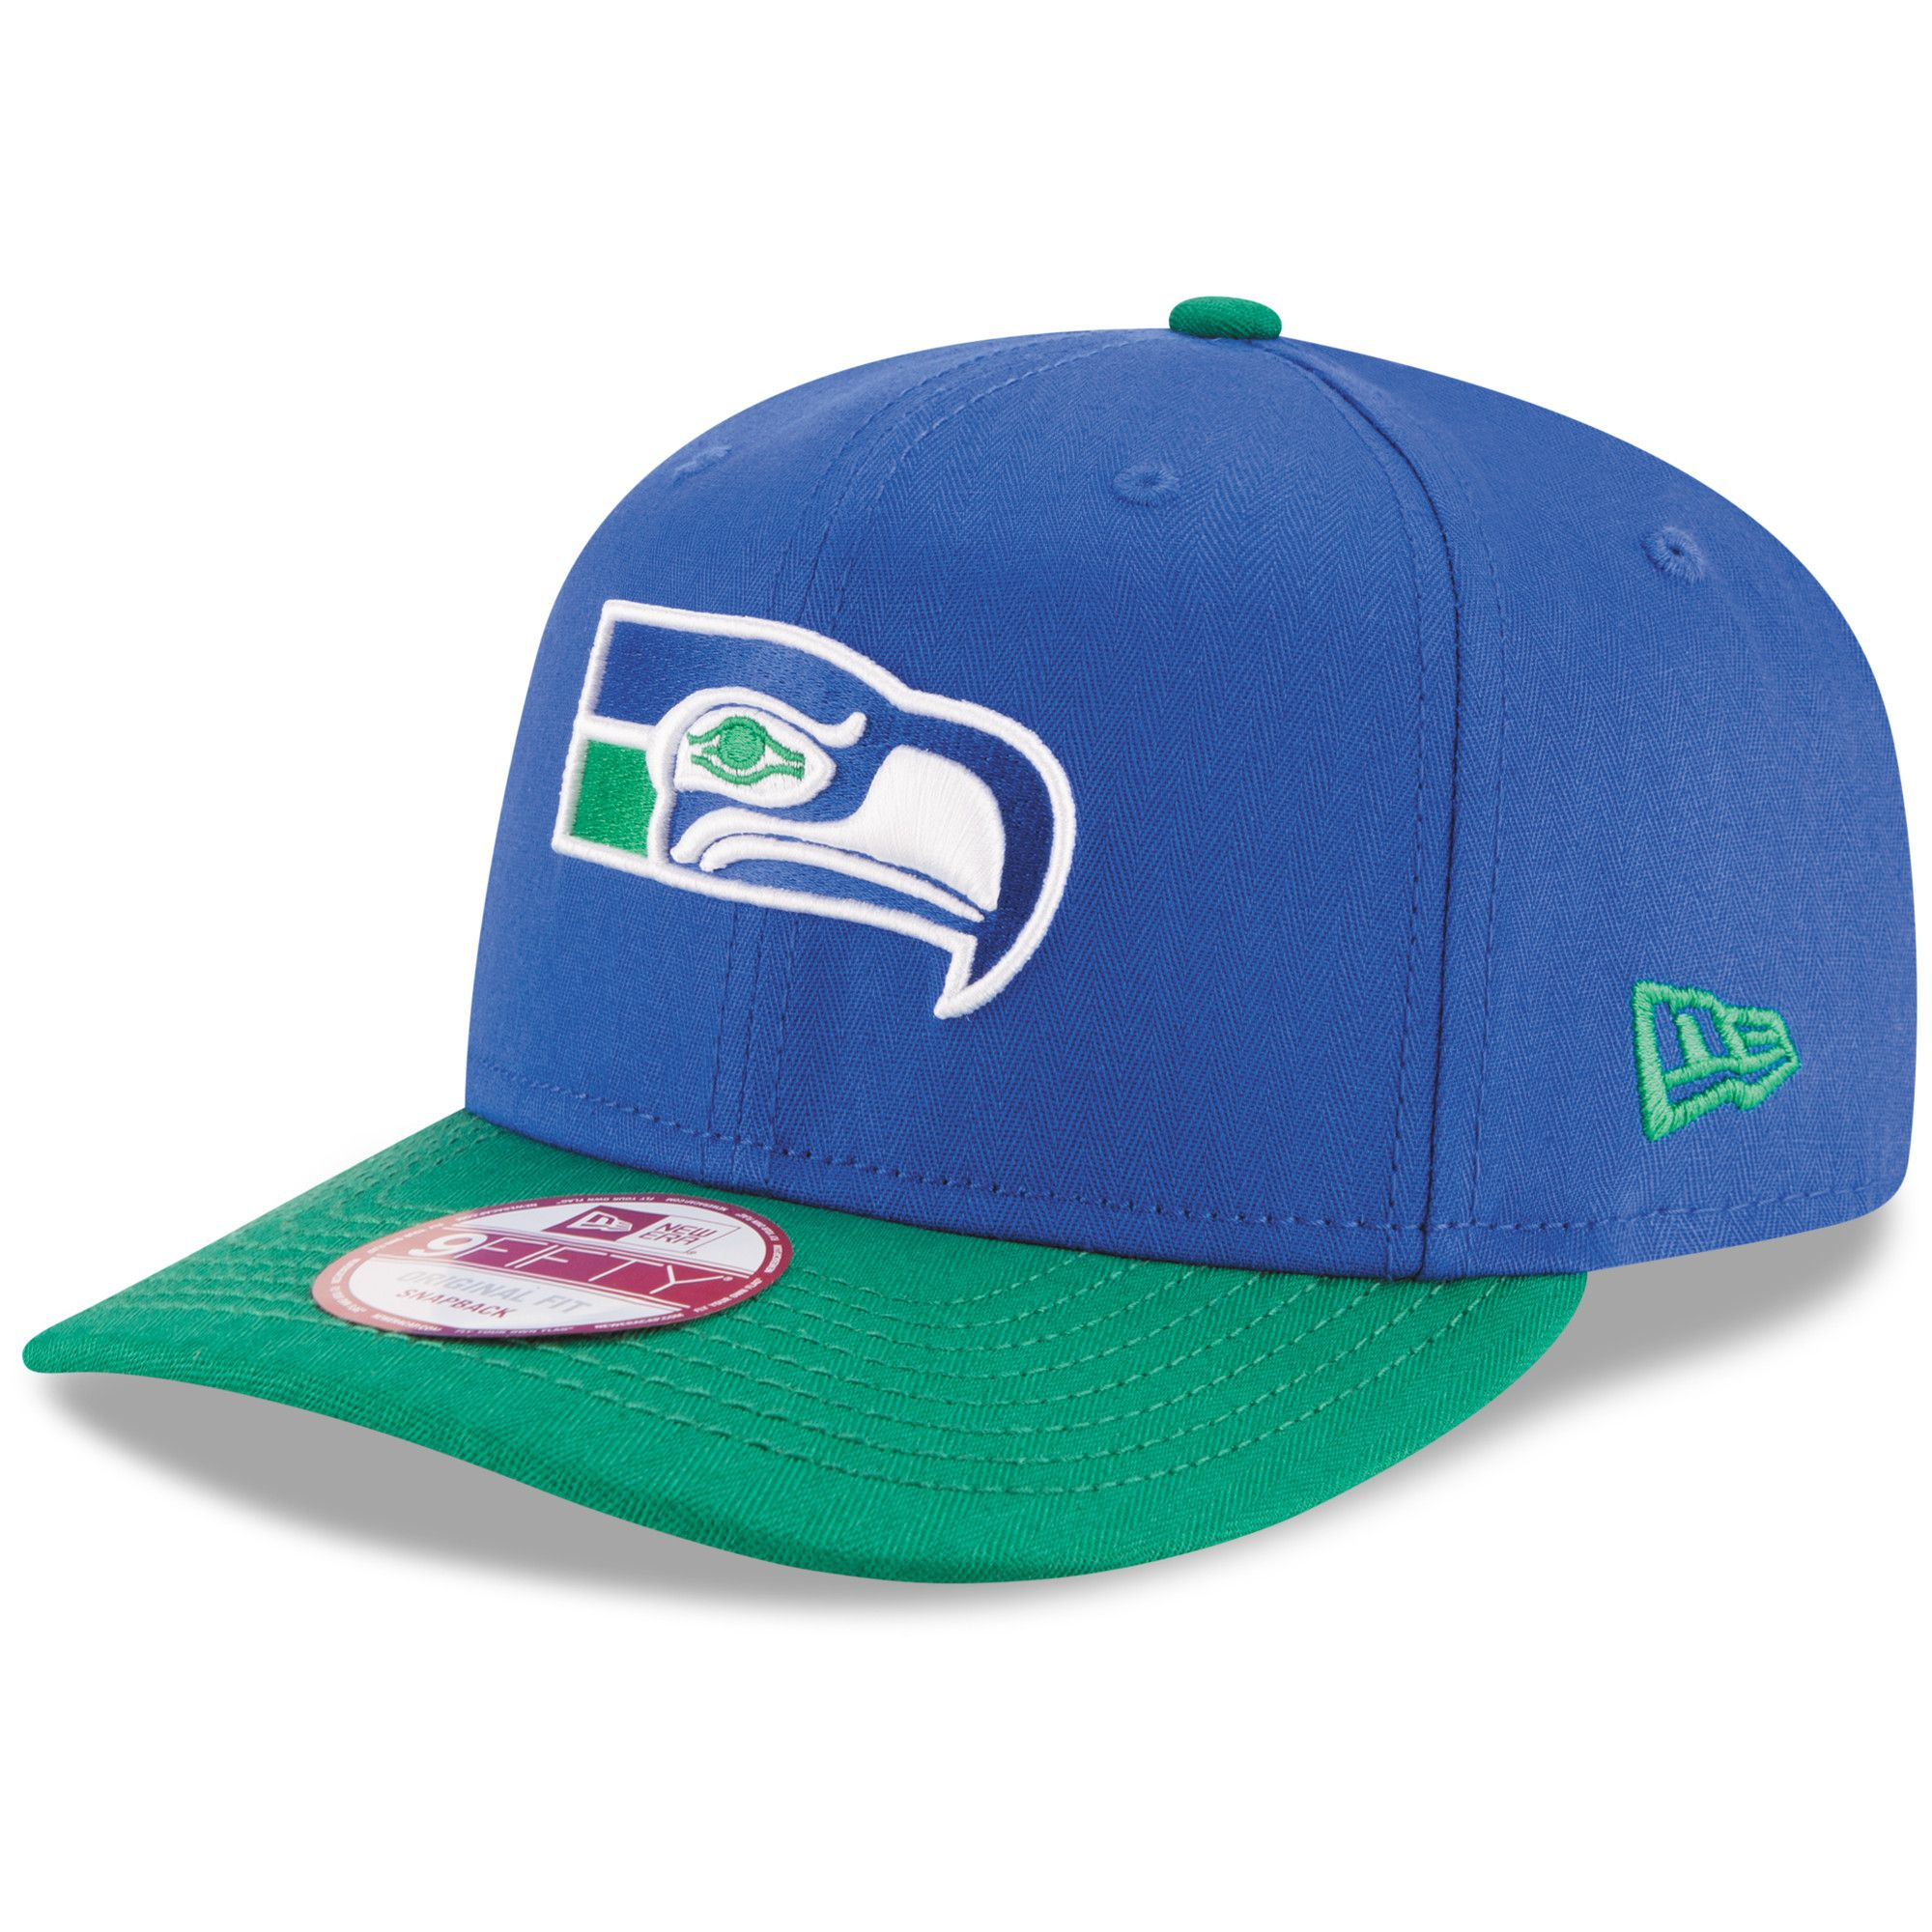 the latest c0fa9 192ac Men s Seattle Seahawks New Era Royal Green Historic Detailed Vize Original  Fit 9FIFTY Snapback Adjustable